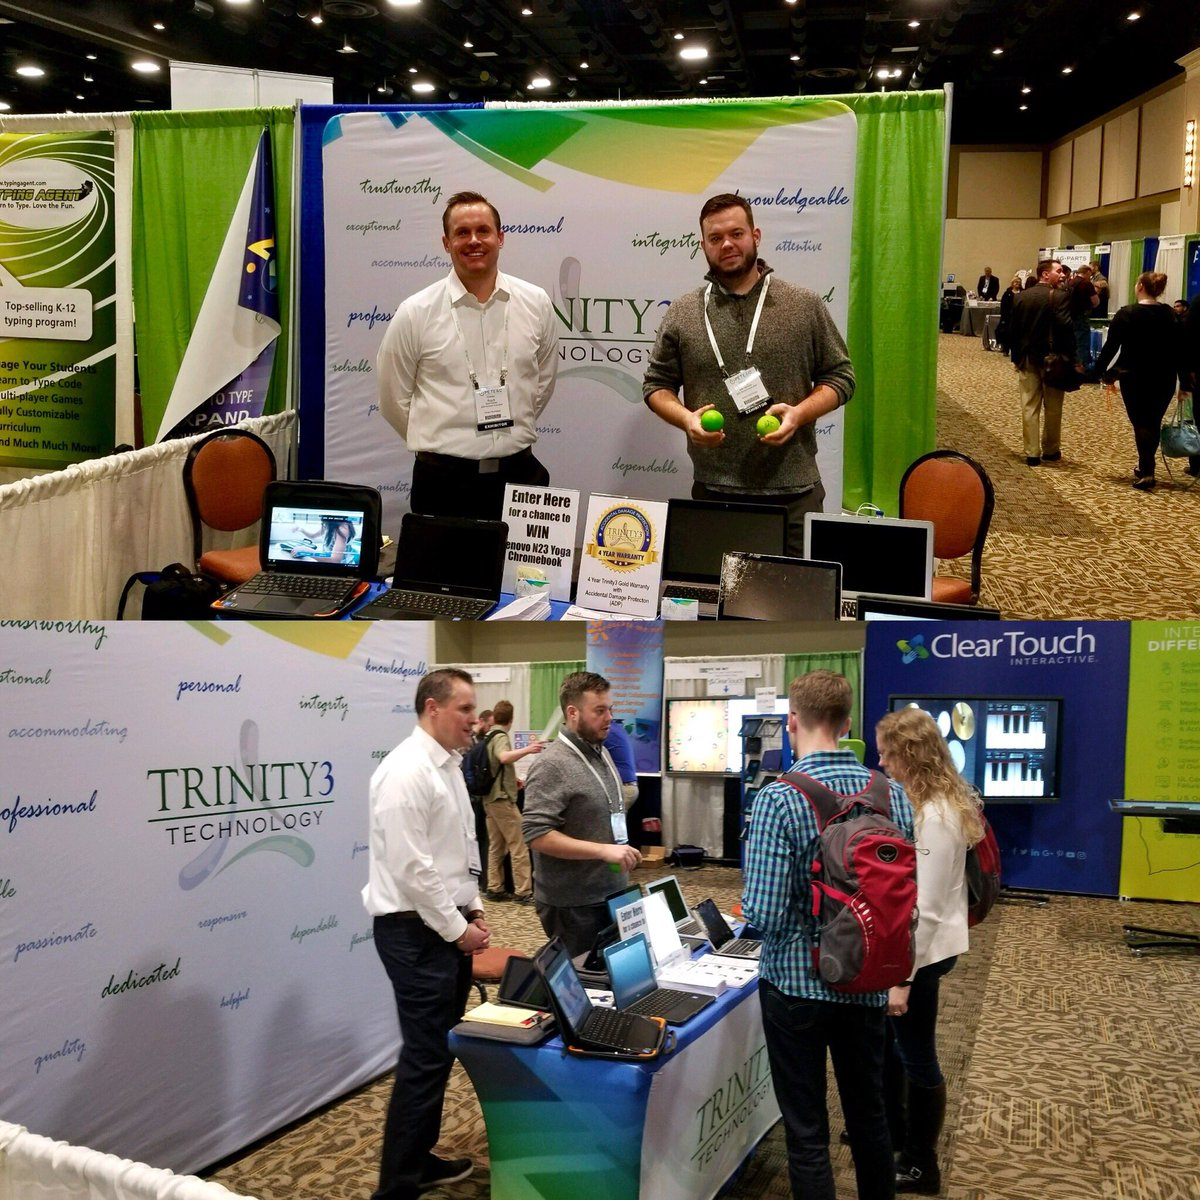 It's the last day of #pete2018! Be sure to say hi to the team at booth #644 and learn about what makes #trinity3 different! https://t.co/yAb40UEDlv